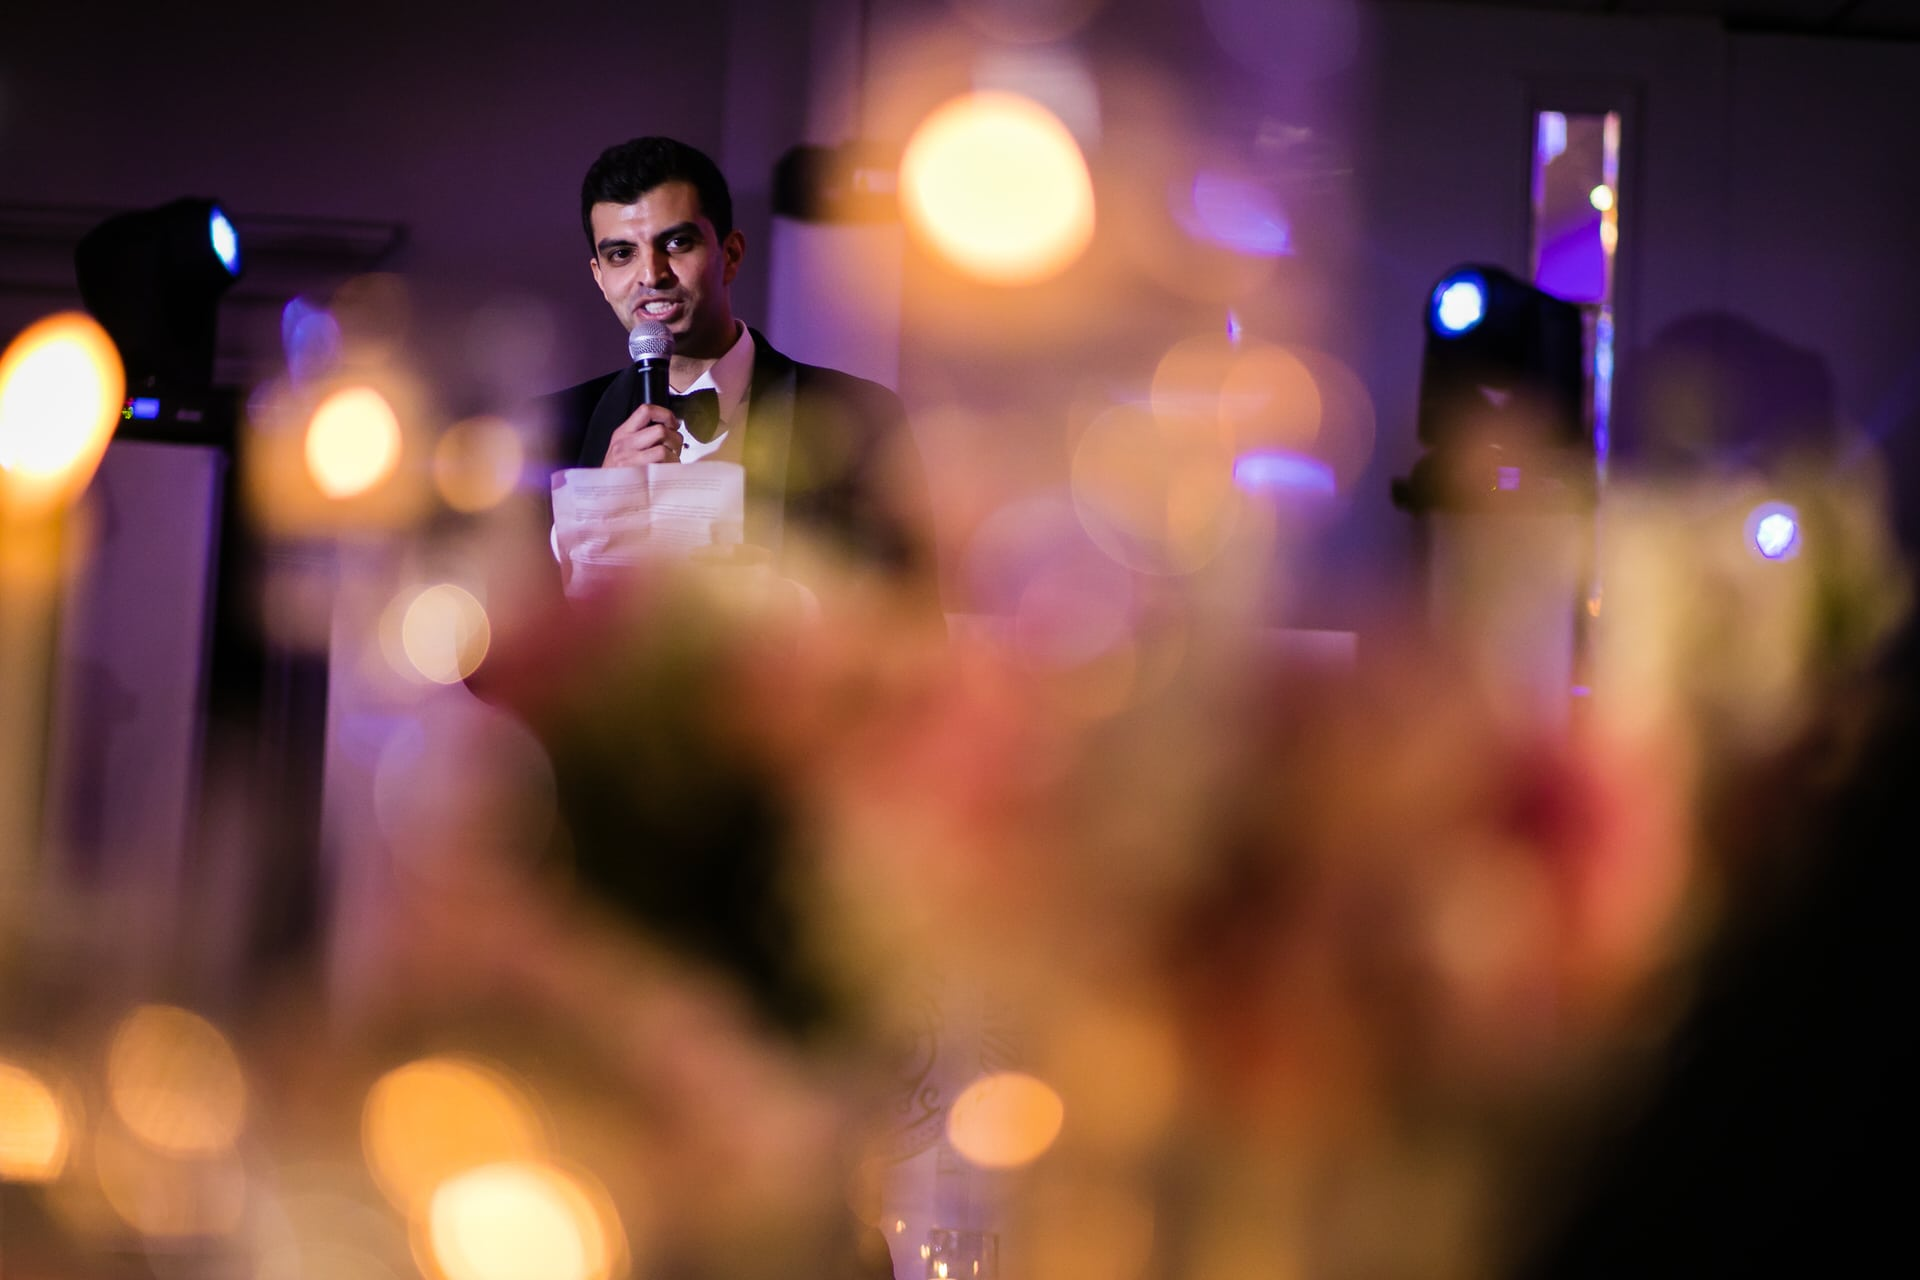 Speech by Brother of Bride